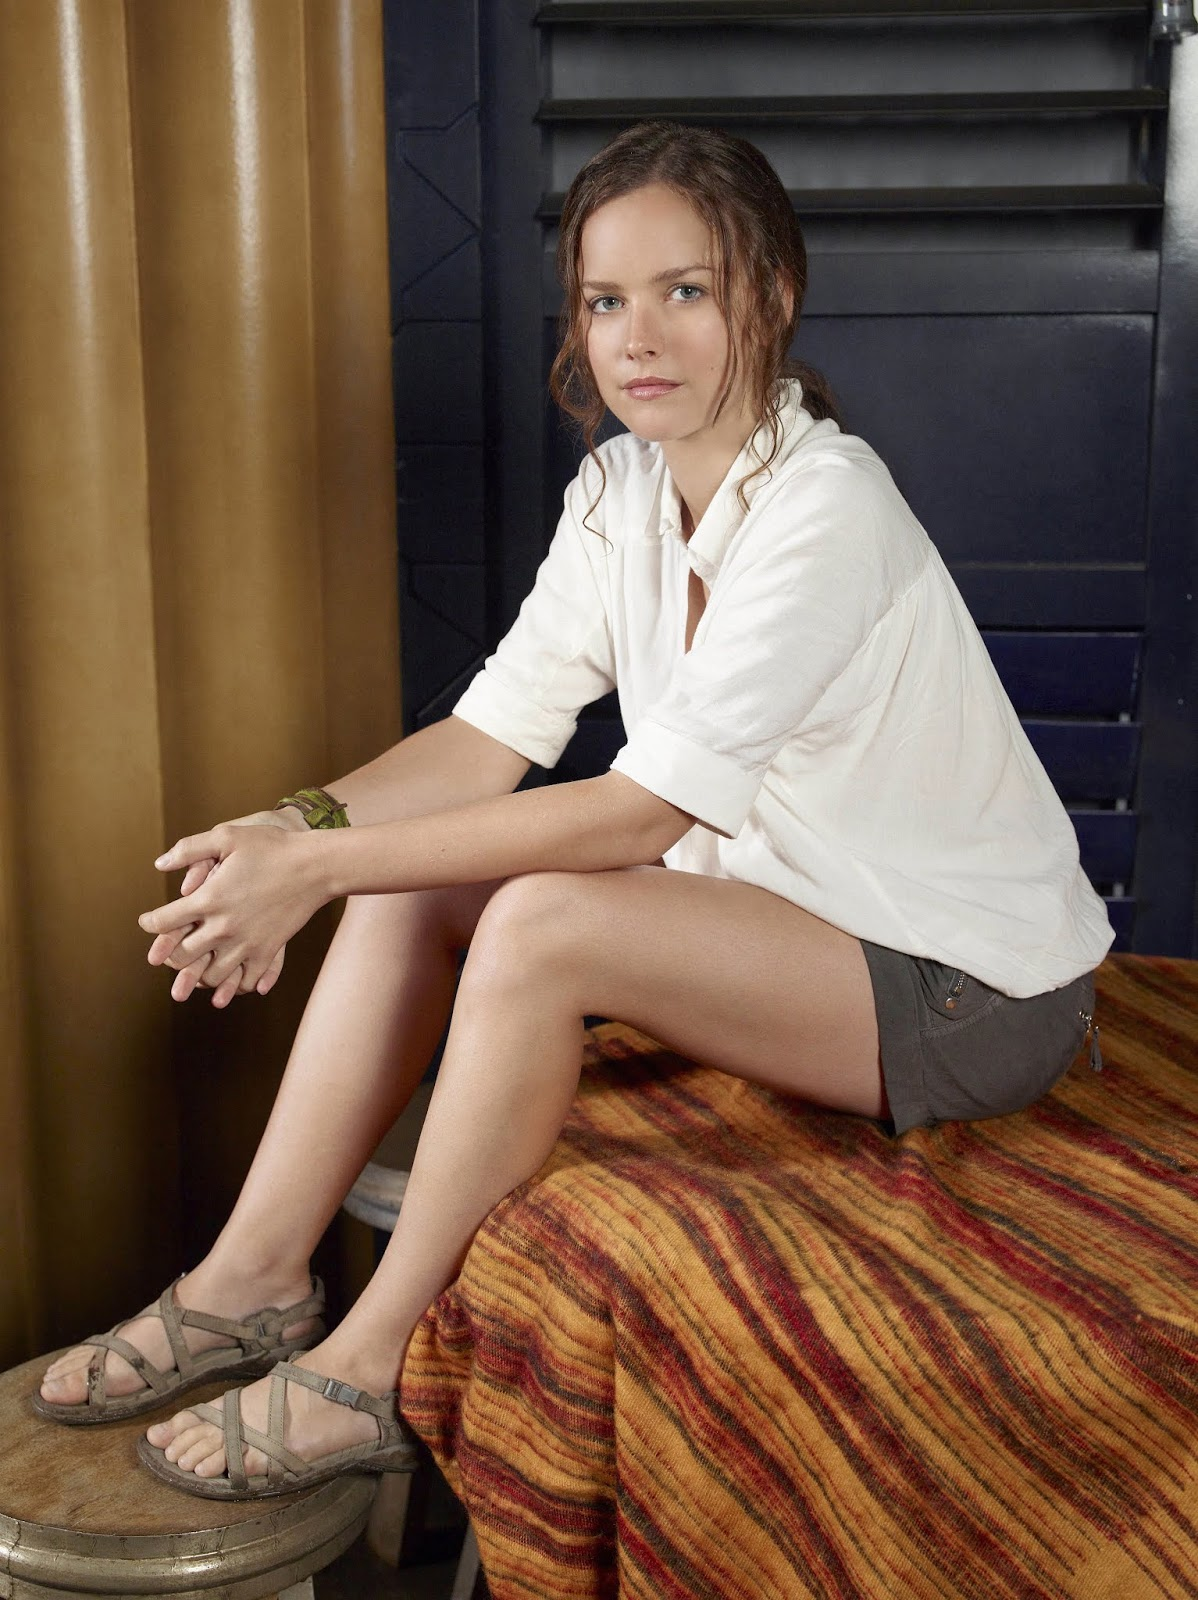 Fappening Feet Laura Queen naked photo 2017